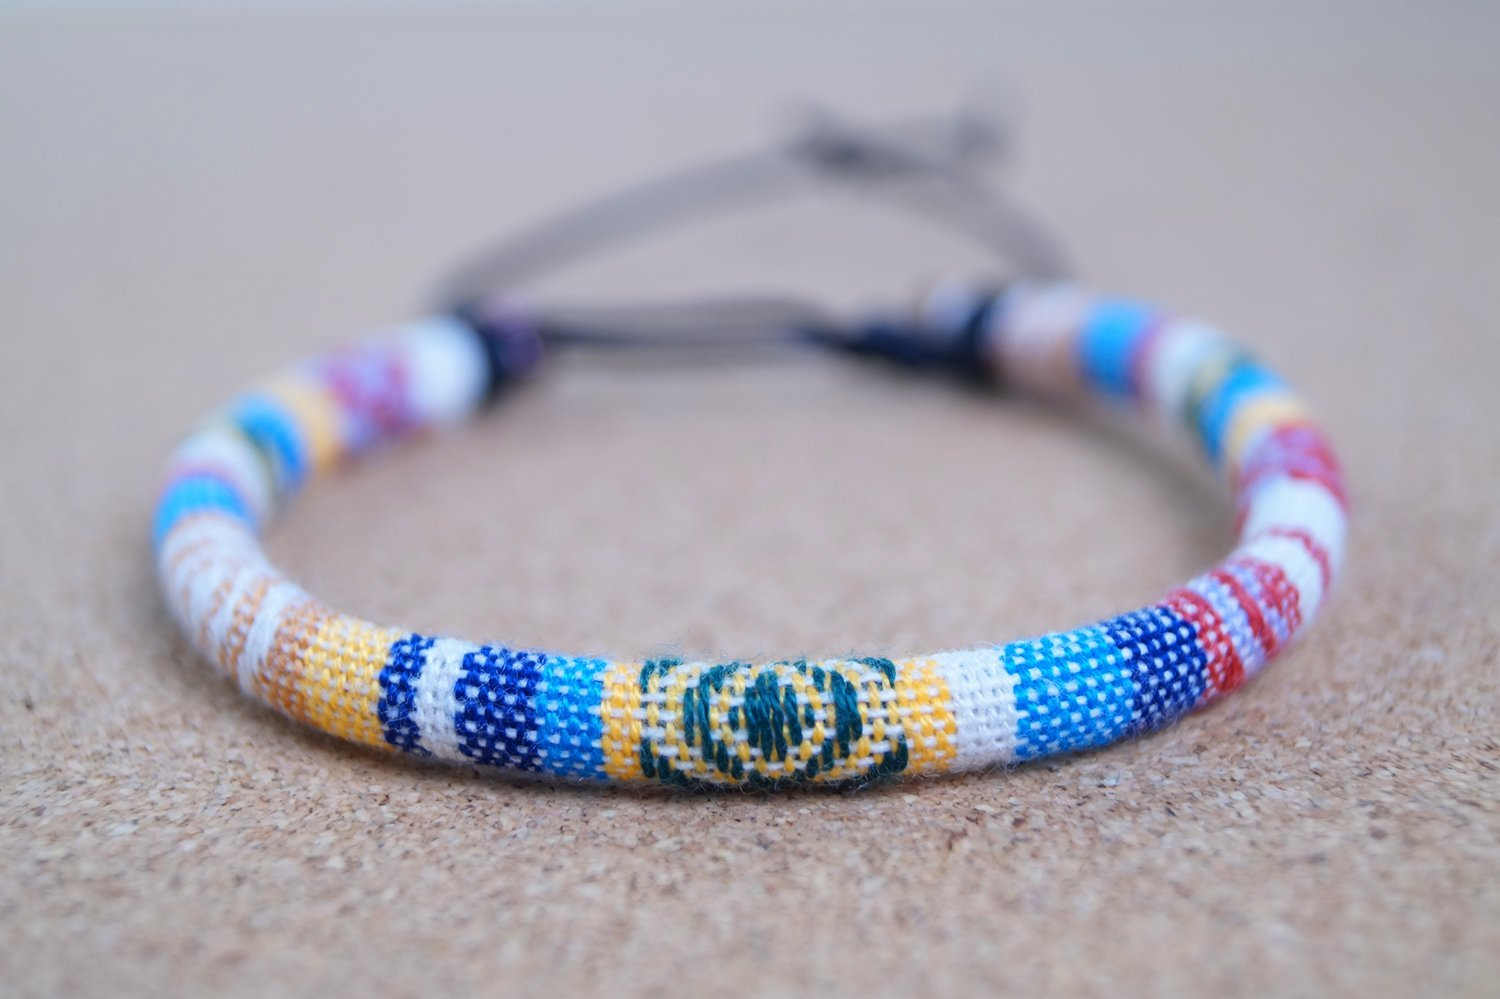 Surfer Bracelet - Beach Bracelet, Jewellery, Wristband, Wristlet, Sailor